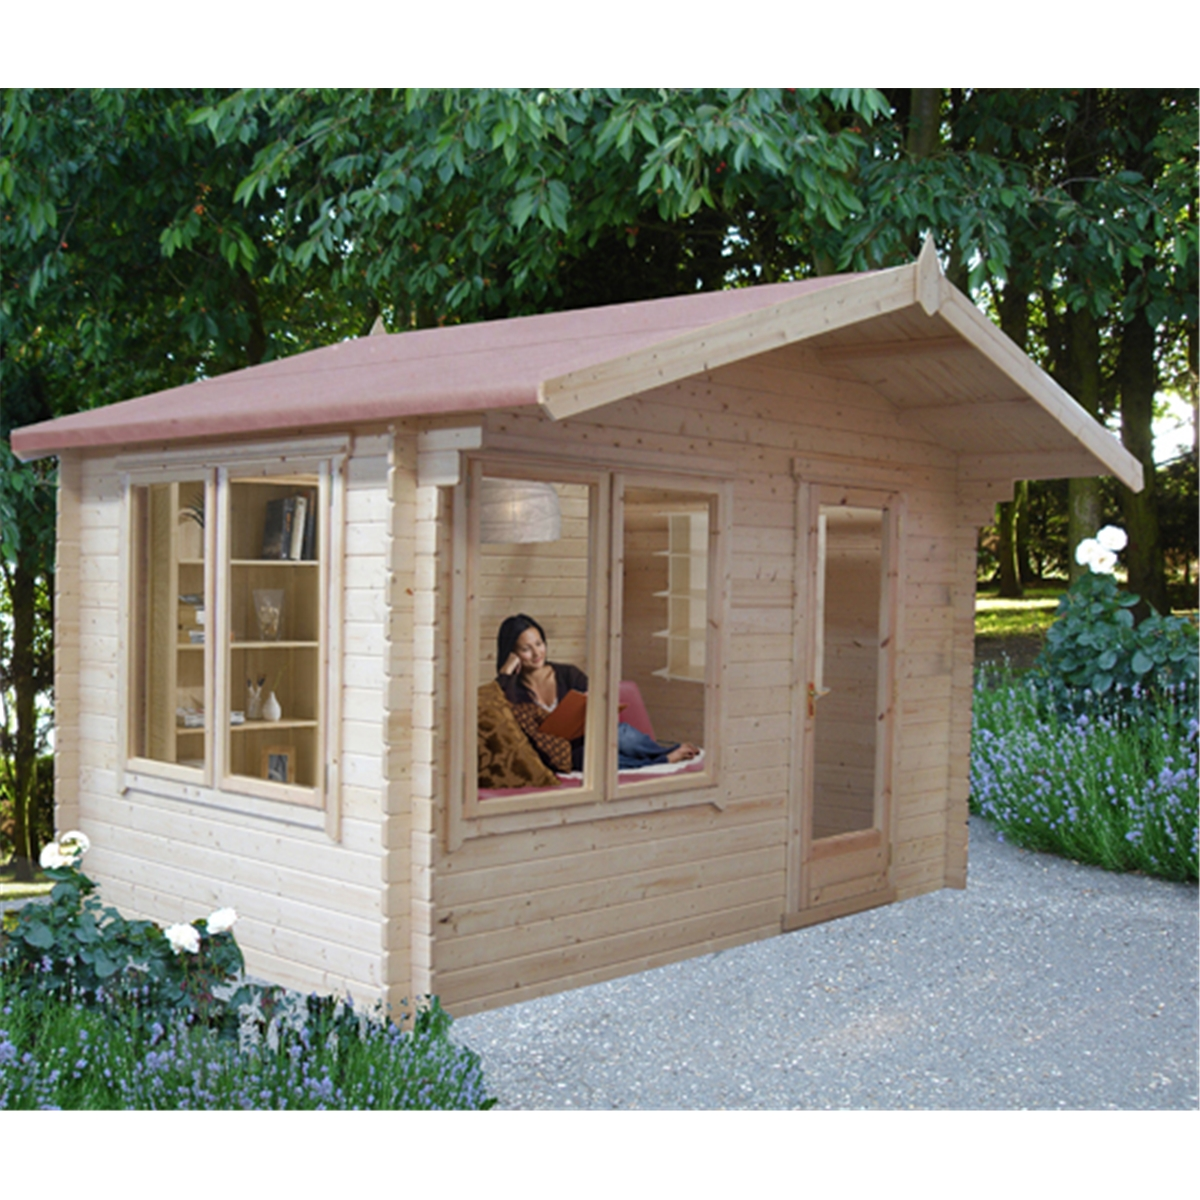 Garden Houses & Buildings 3.59m x 3.59m Log Cabin With Fully Glazed Single Door - 28mm Wall Thickness